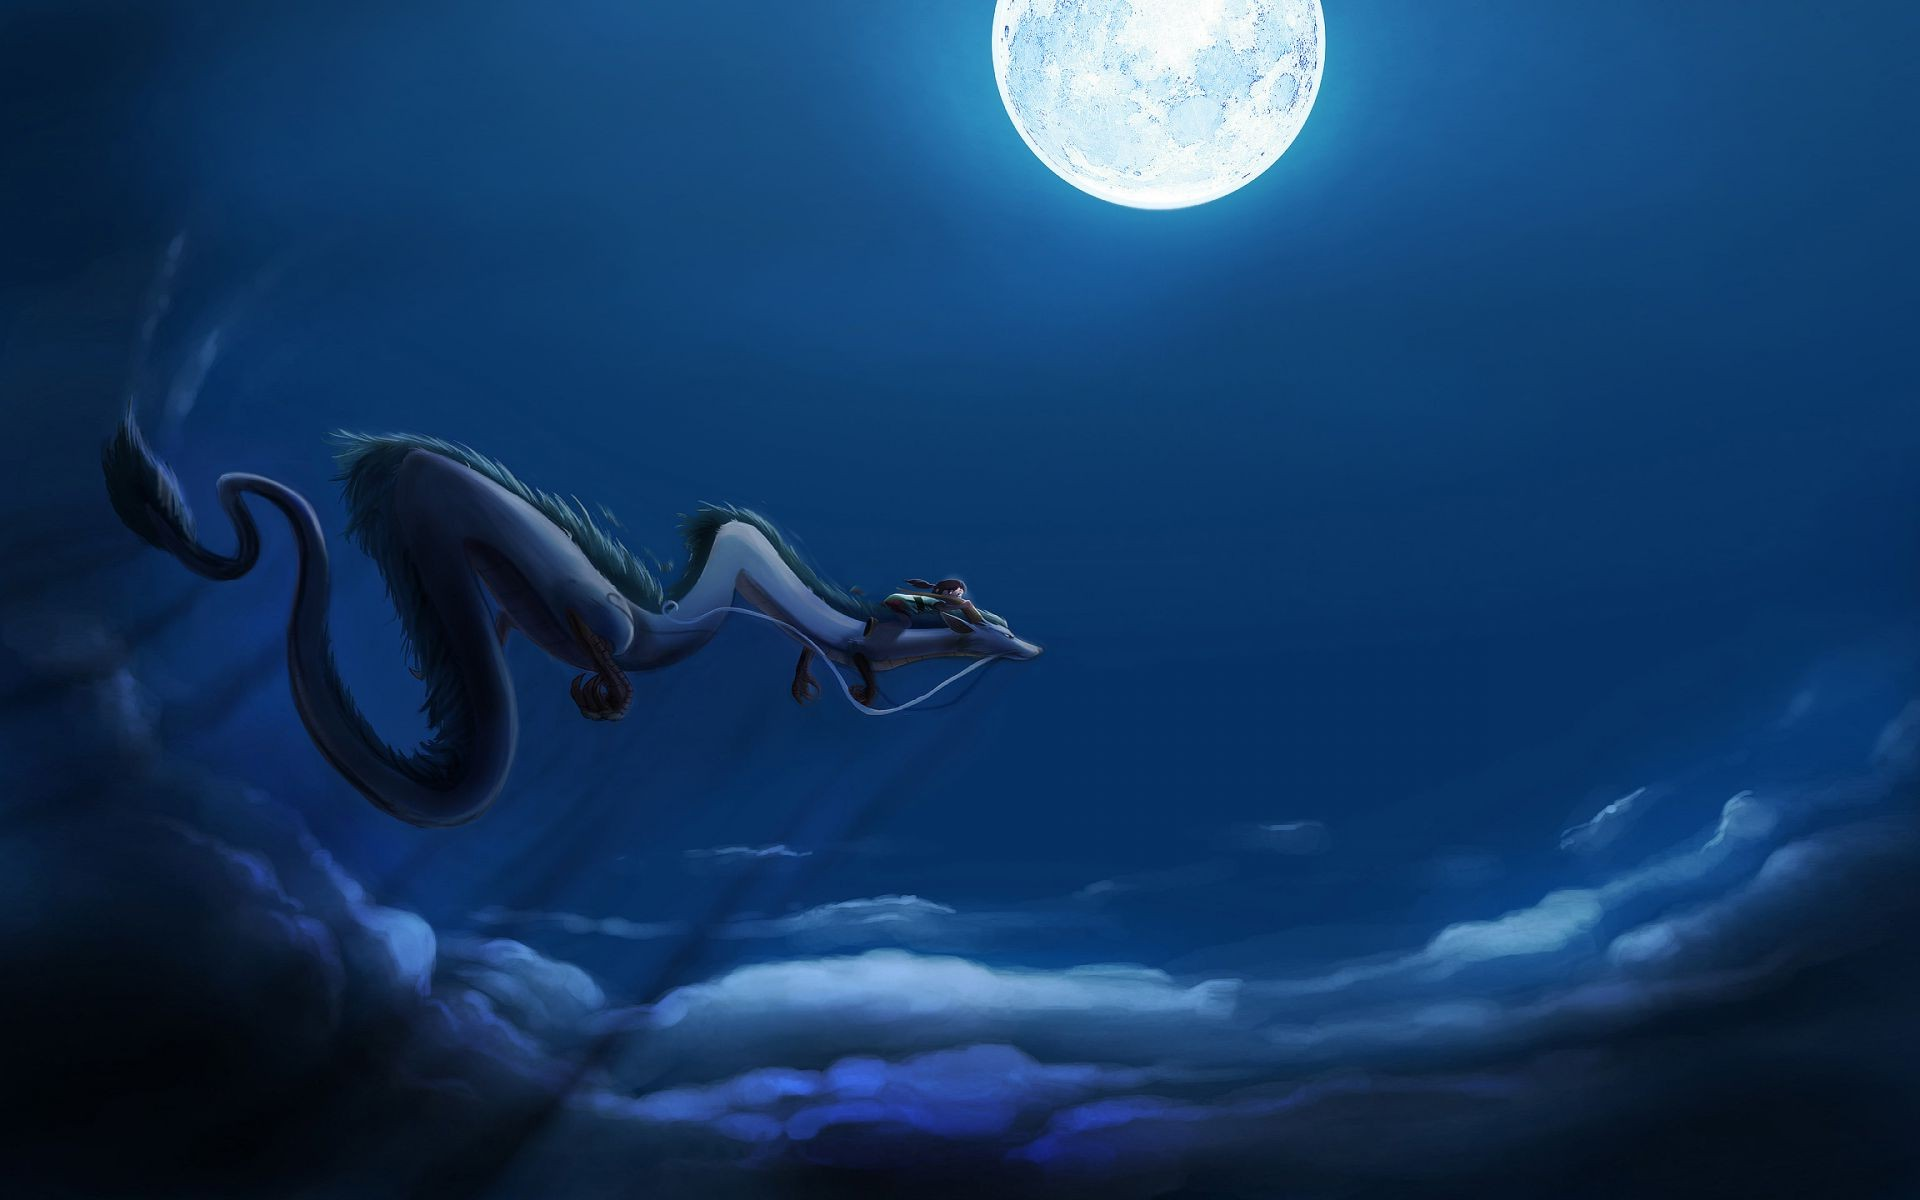 Dragon Moon Spirited Away Flight Android Wallpapers For Free